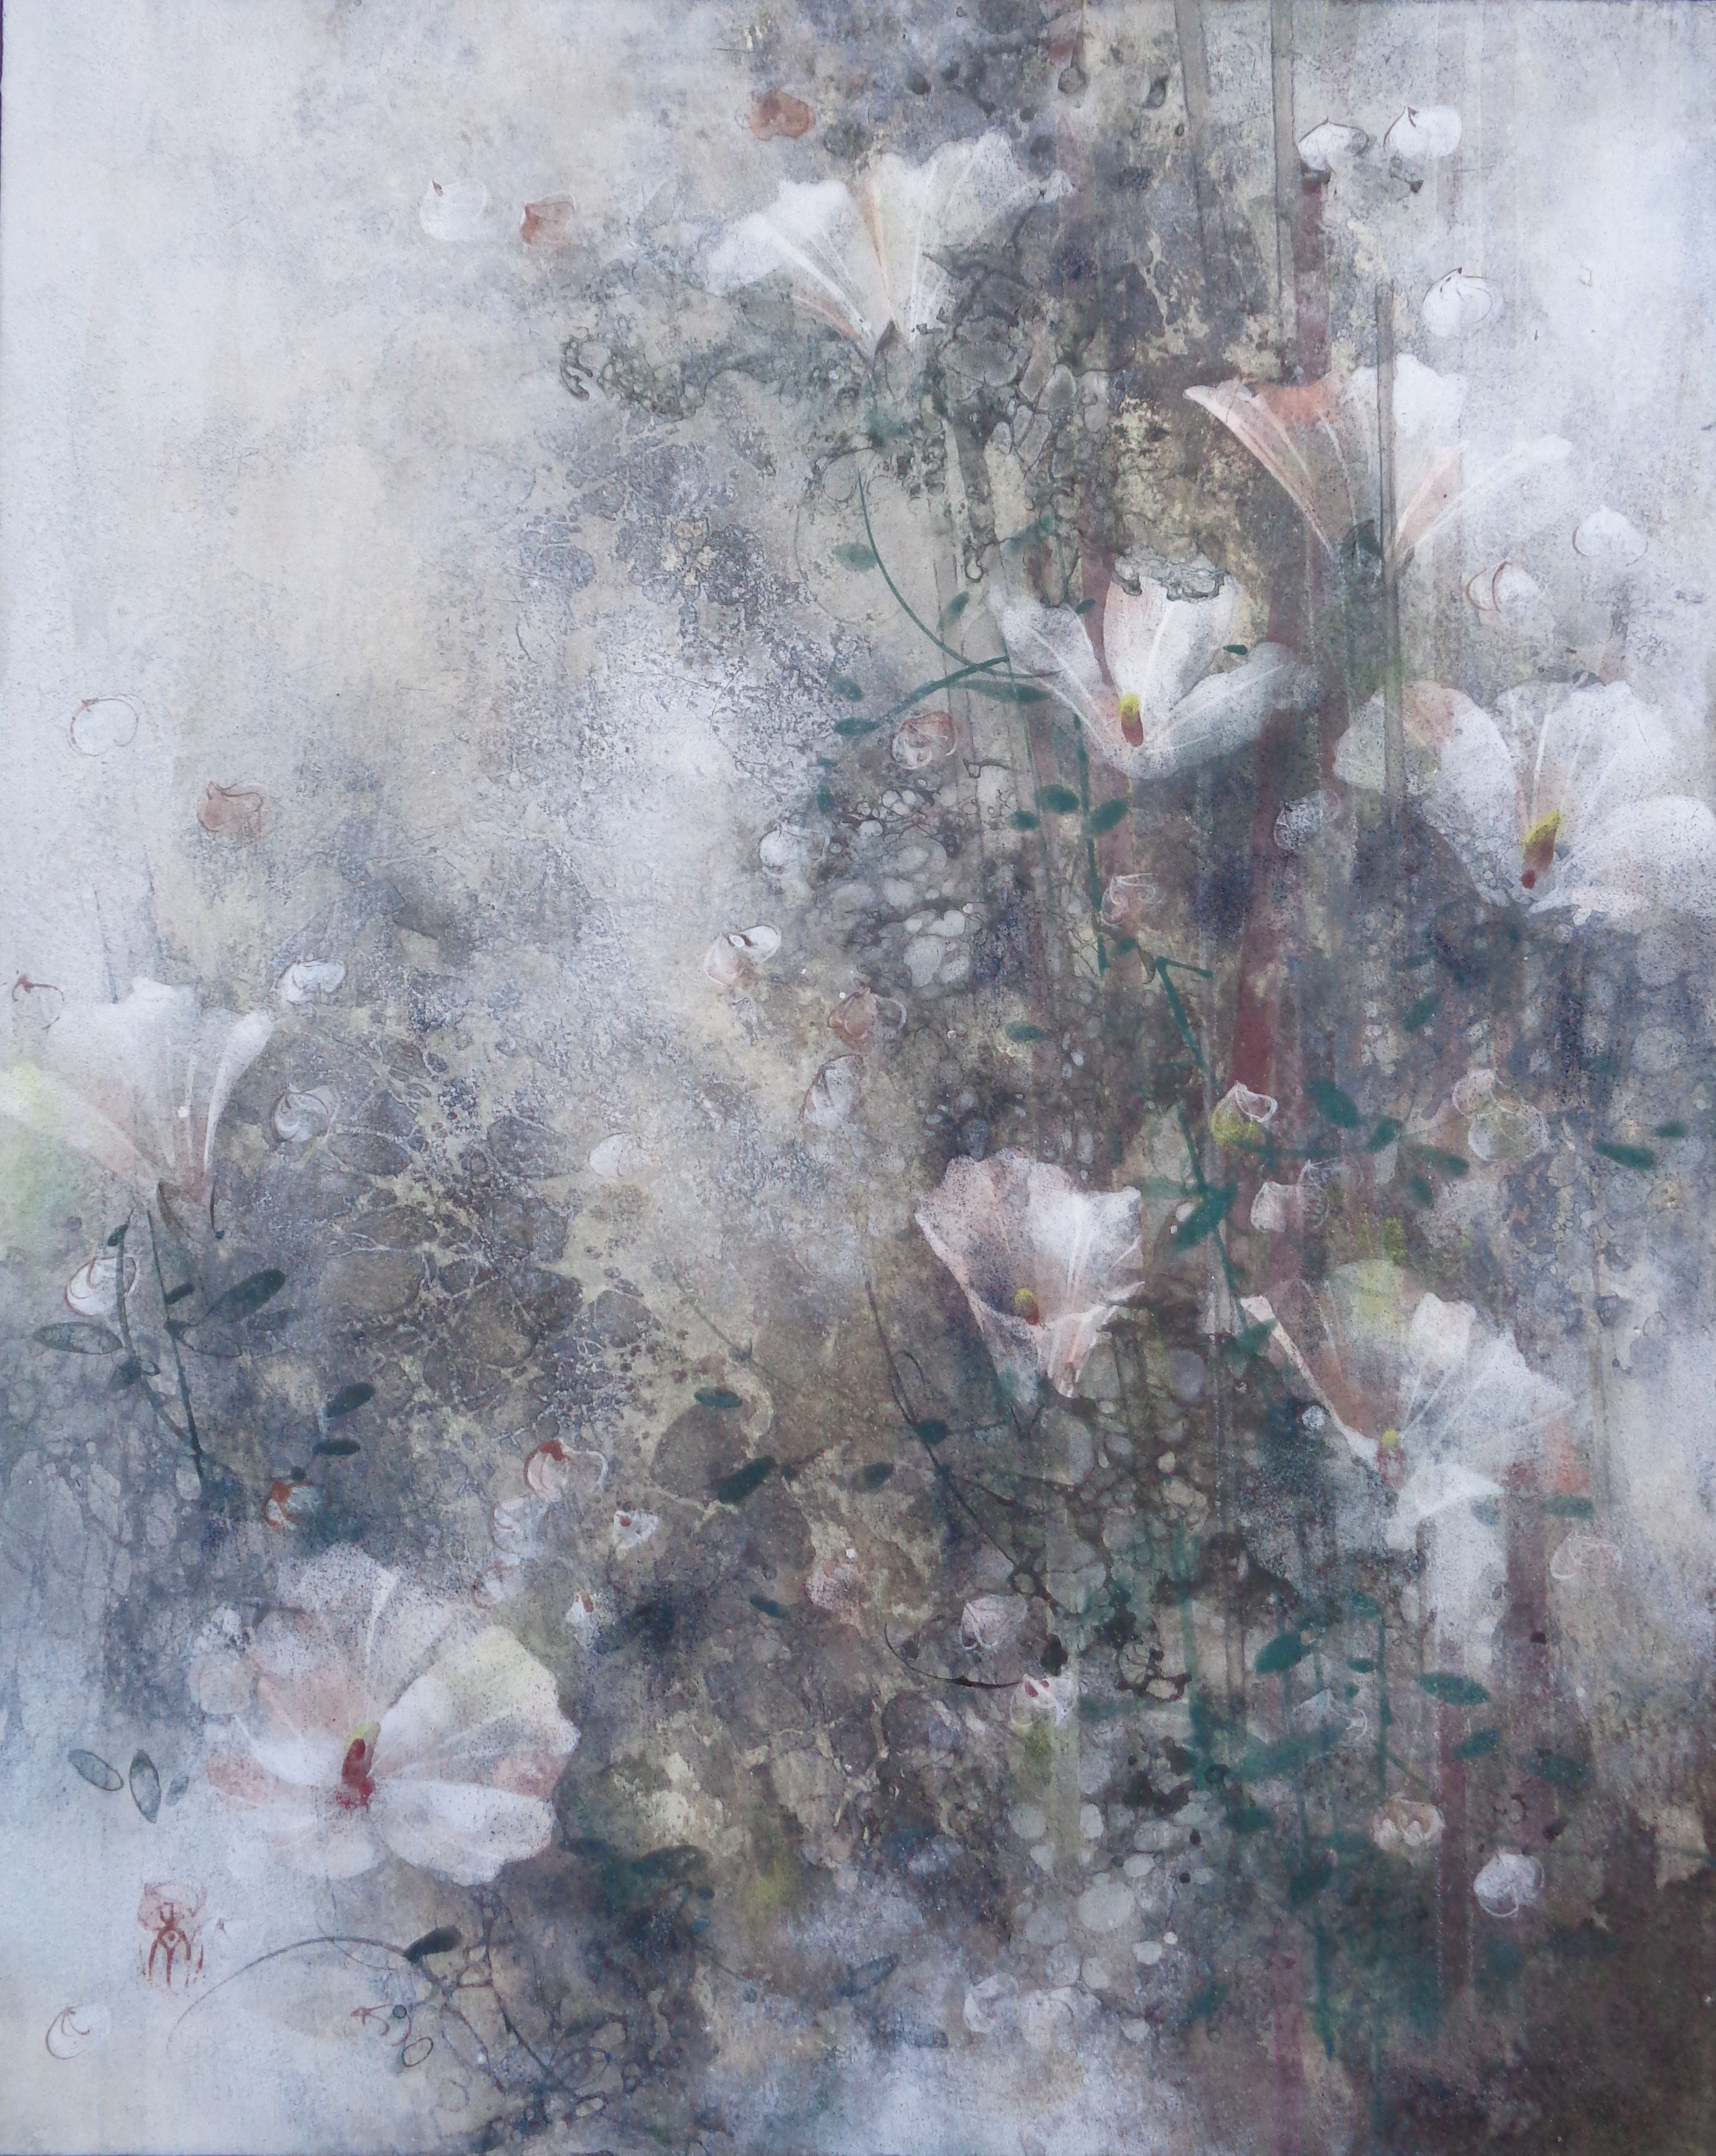 Linière,Chen Yiching,Contemporary painting